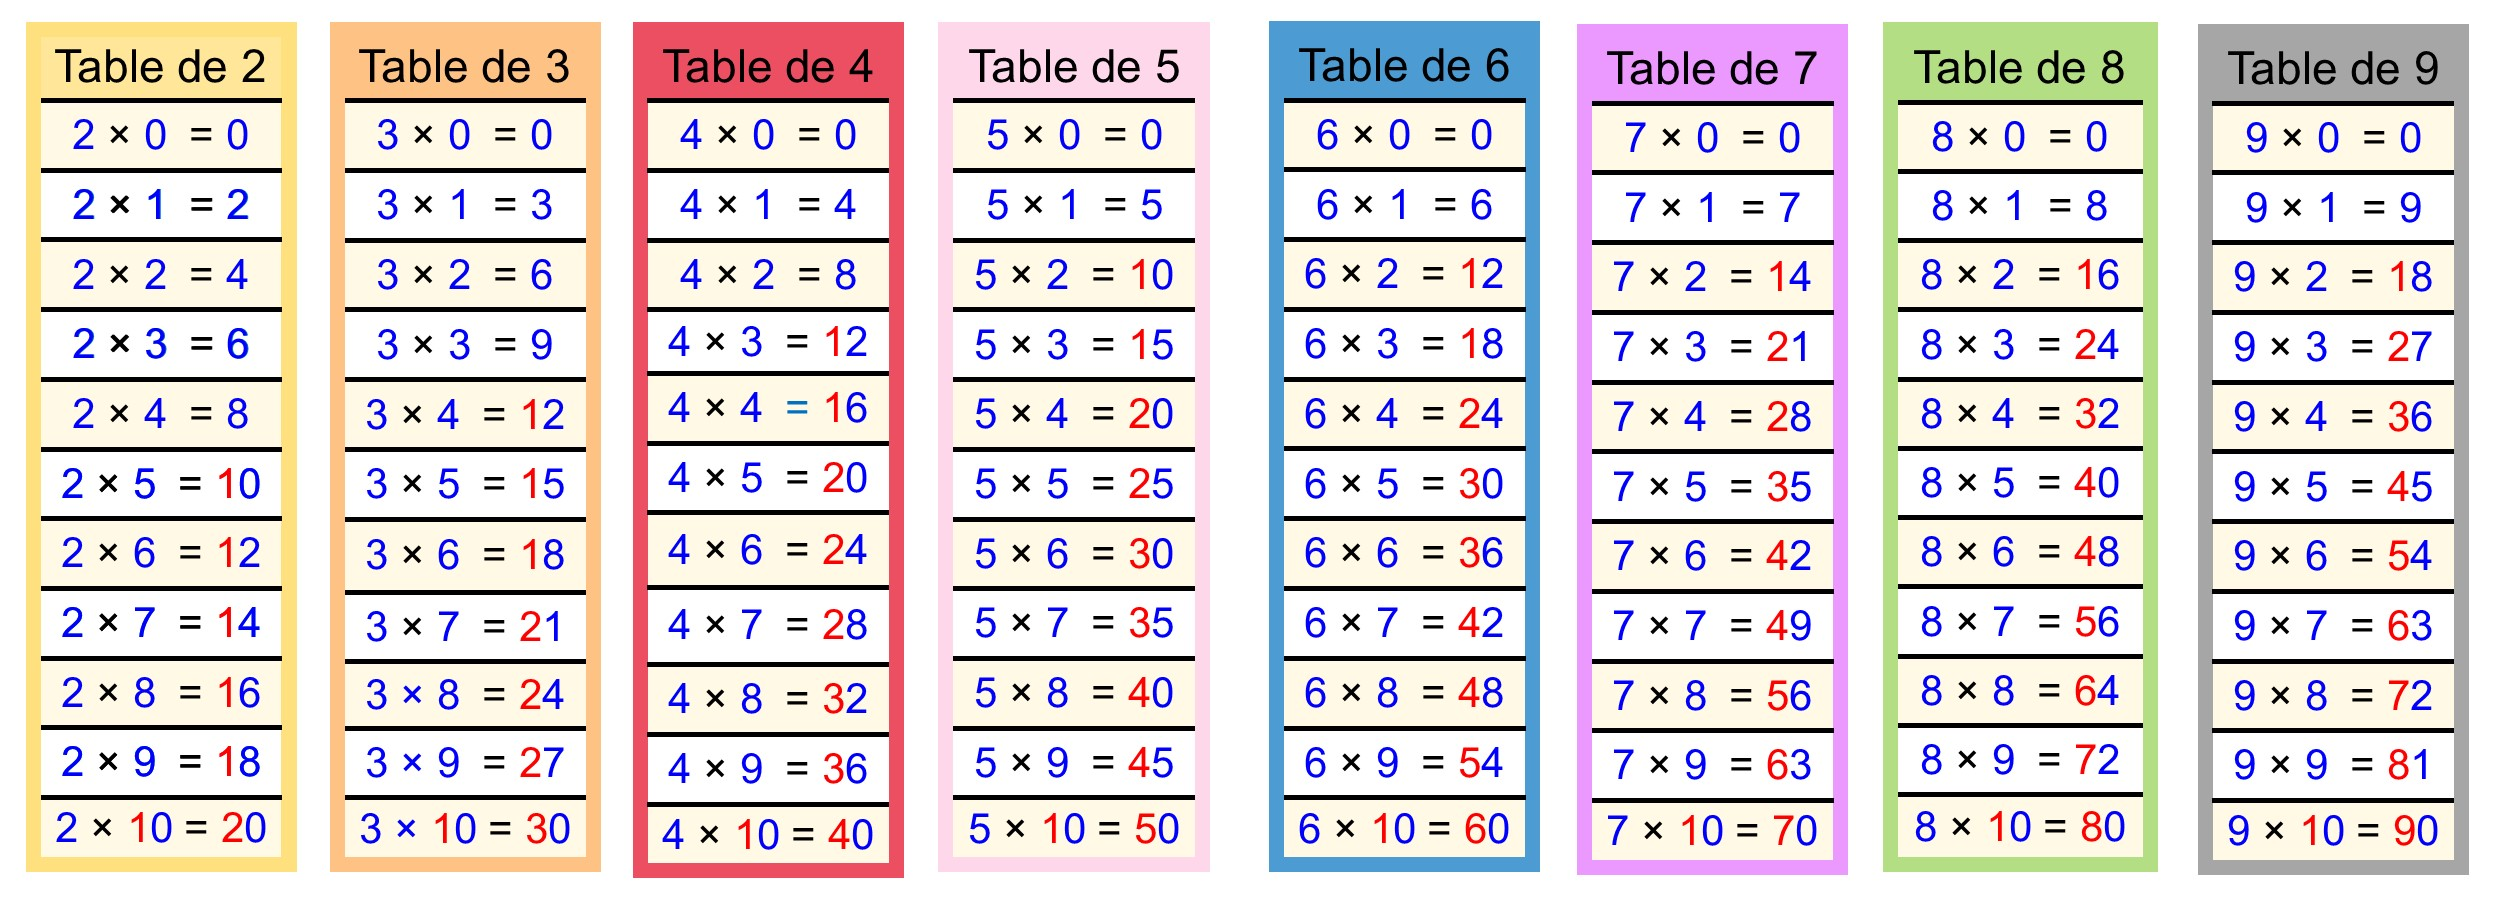 Calculer cartable fantastique - Application pour apprendre les tables de multiplication ...